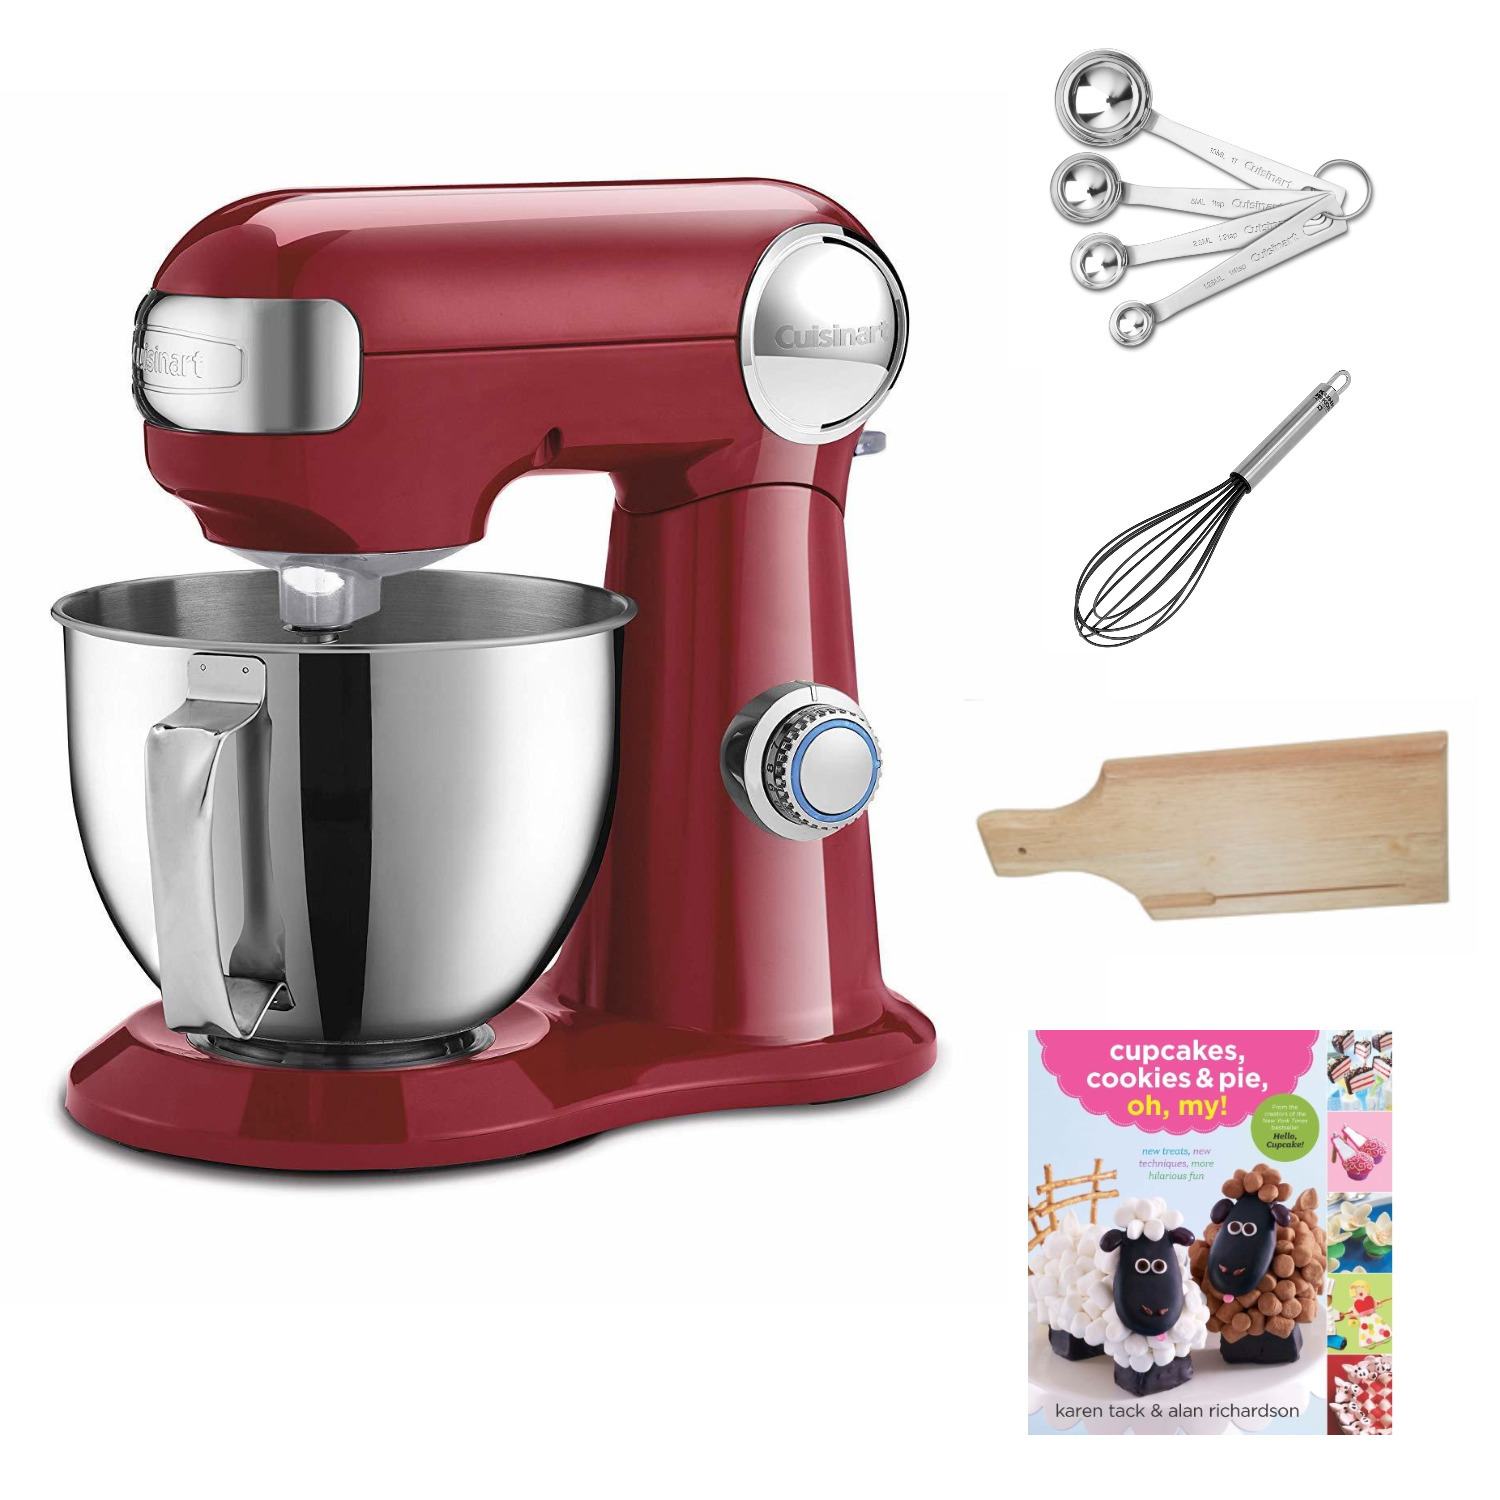 Cuisinart Precision Master 3.5 Quart Stand Mixer (Ruby Red) w/ Accessories